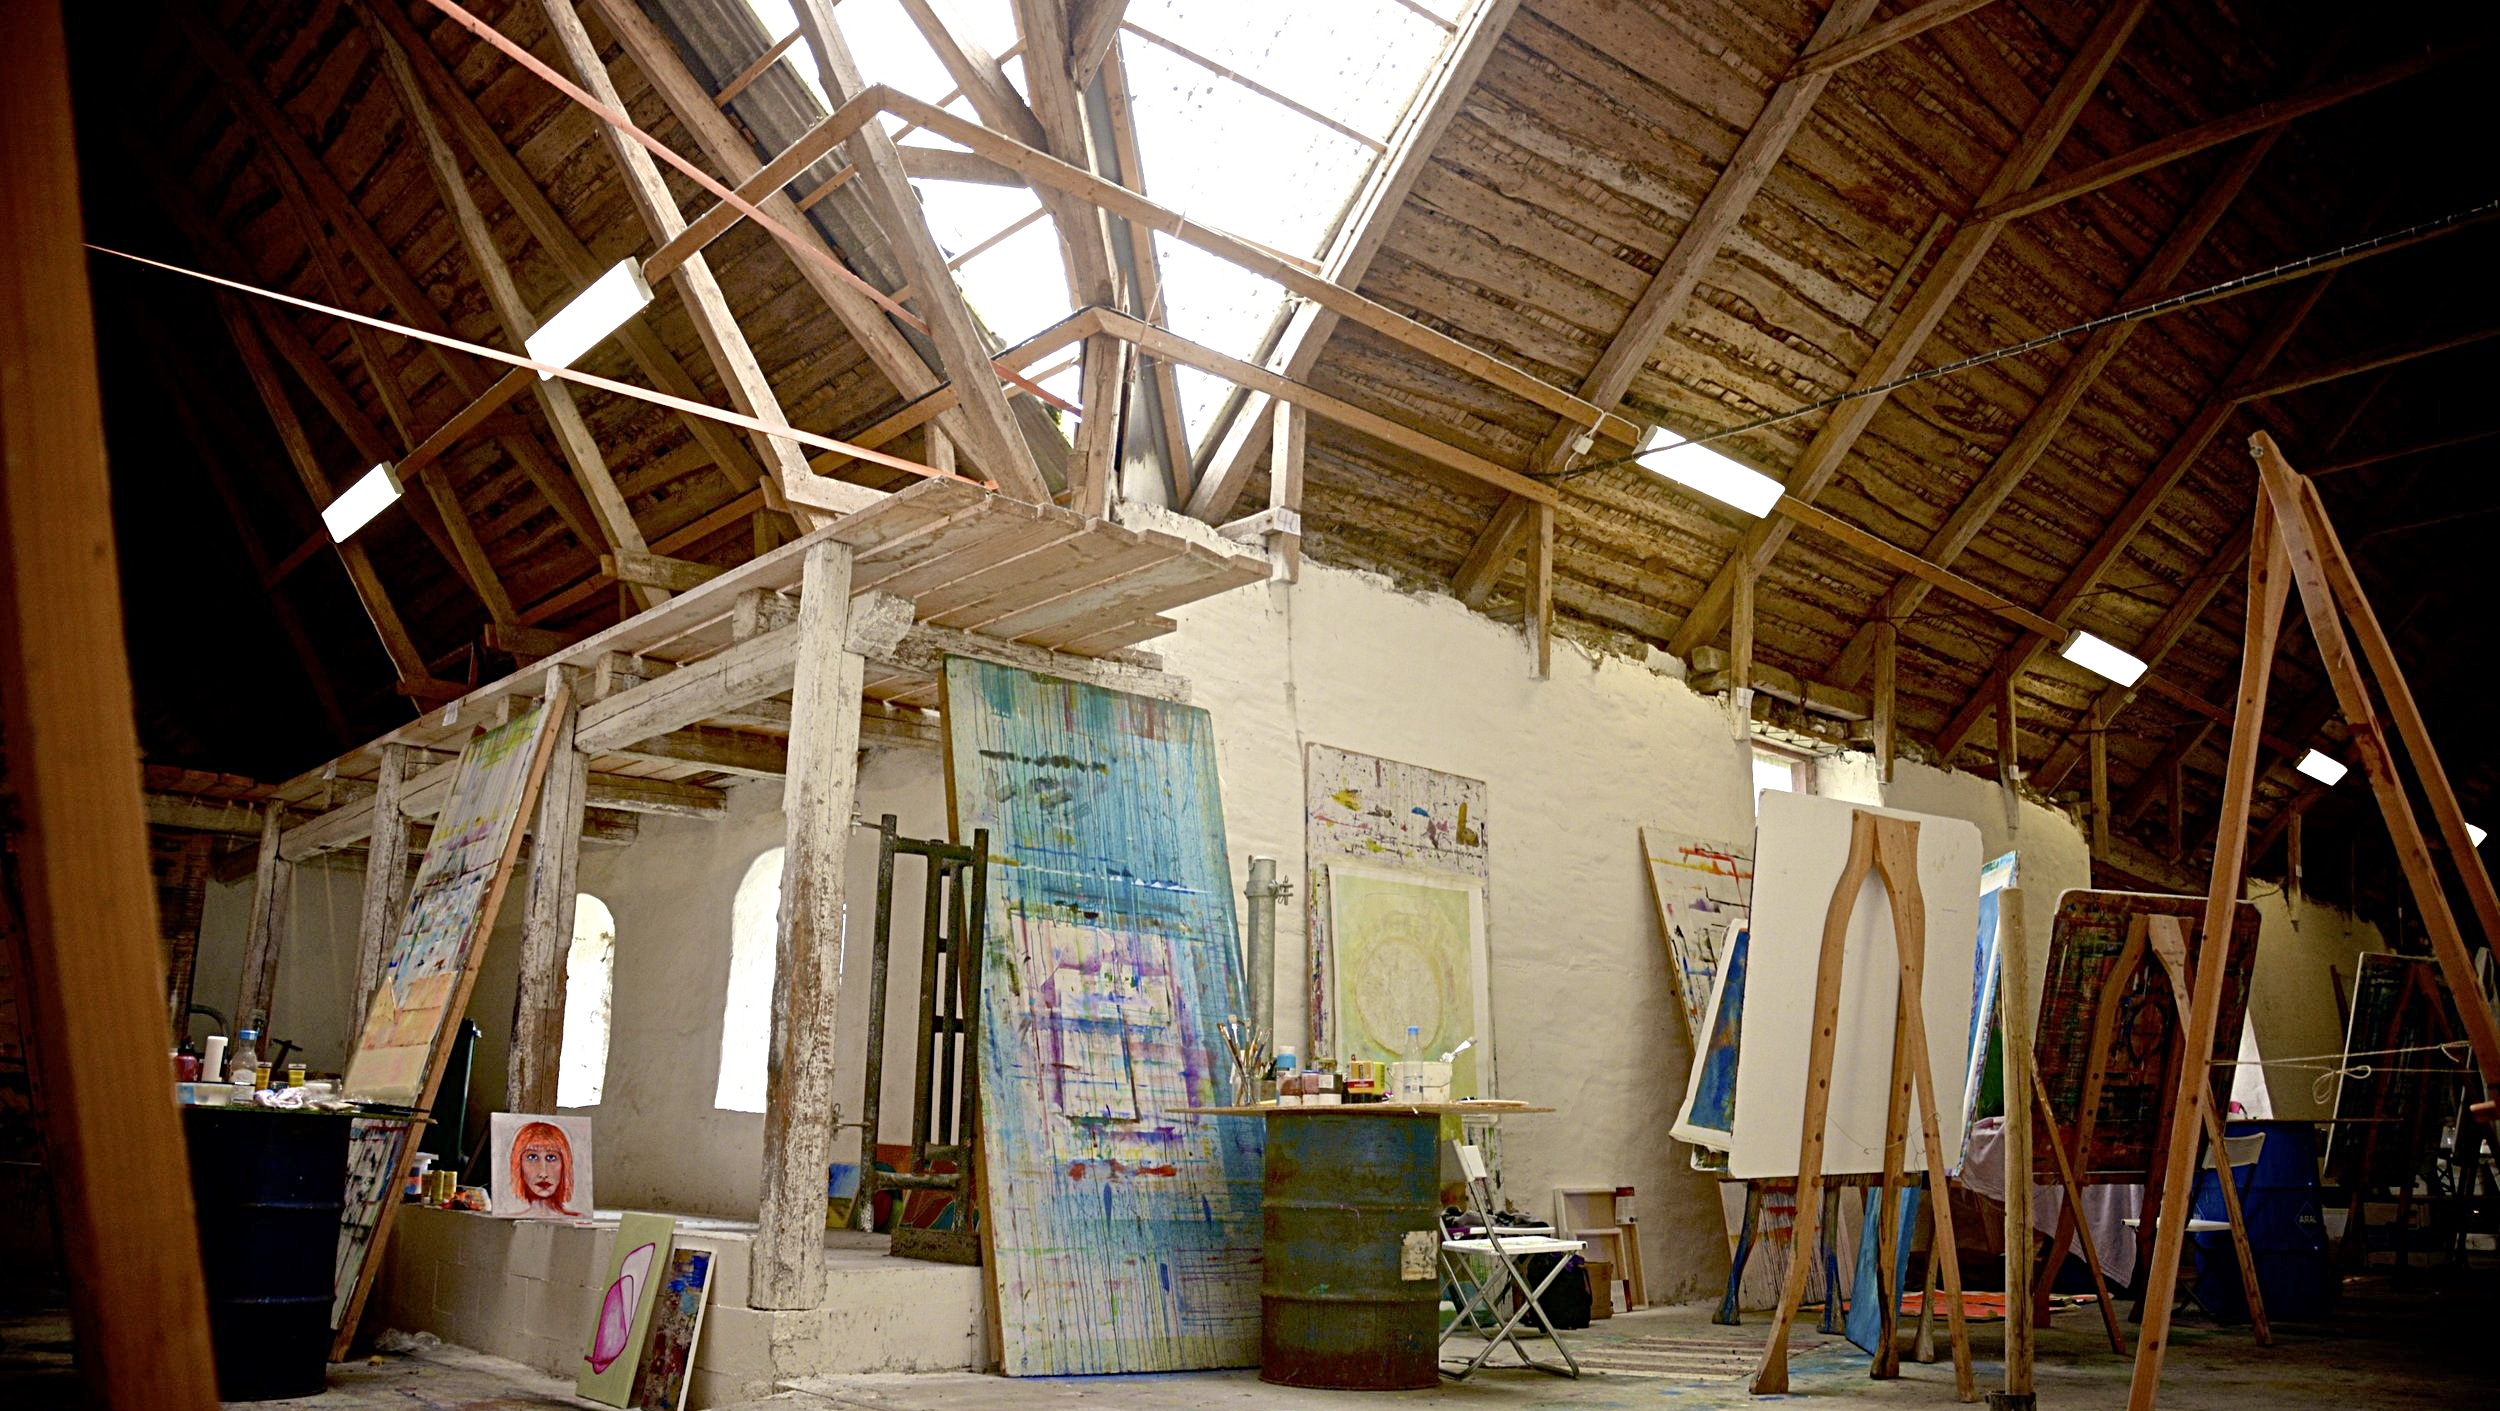 Enetri, one of our light and beautiful countryside barns where students are painting during summer courses.